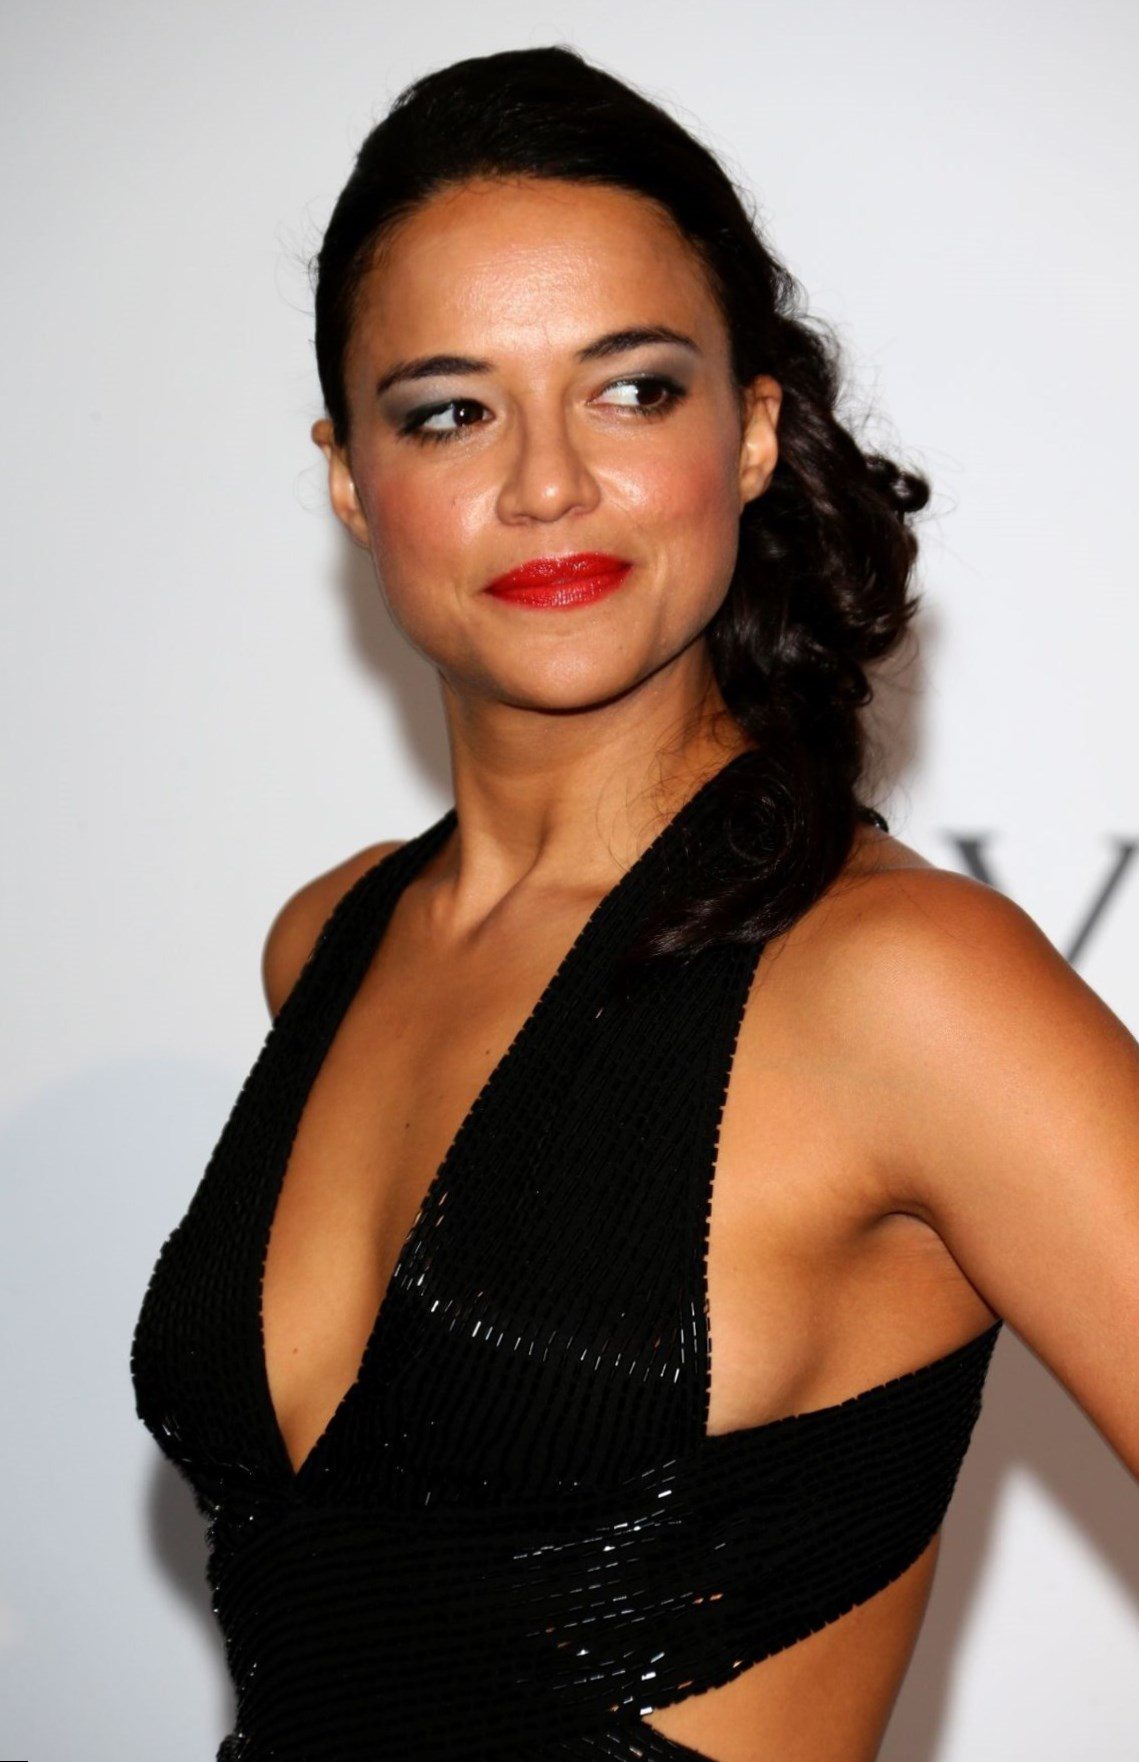 Michelle Rodriguez – Height, Weight, Age